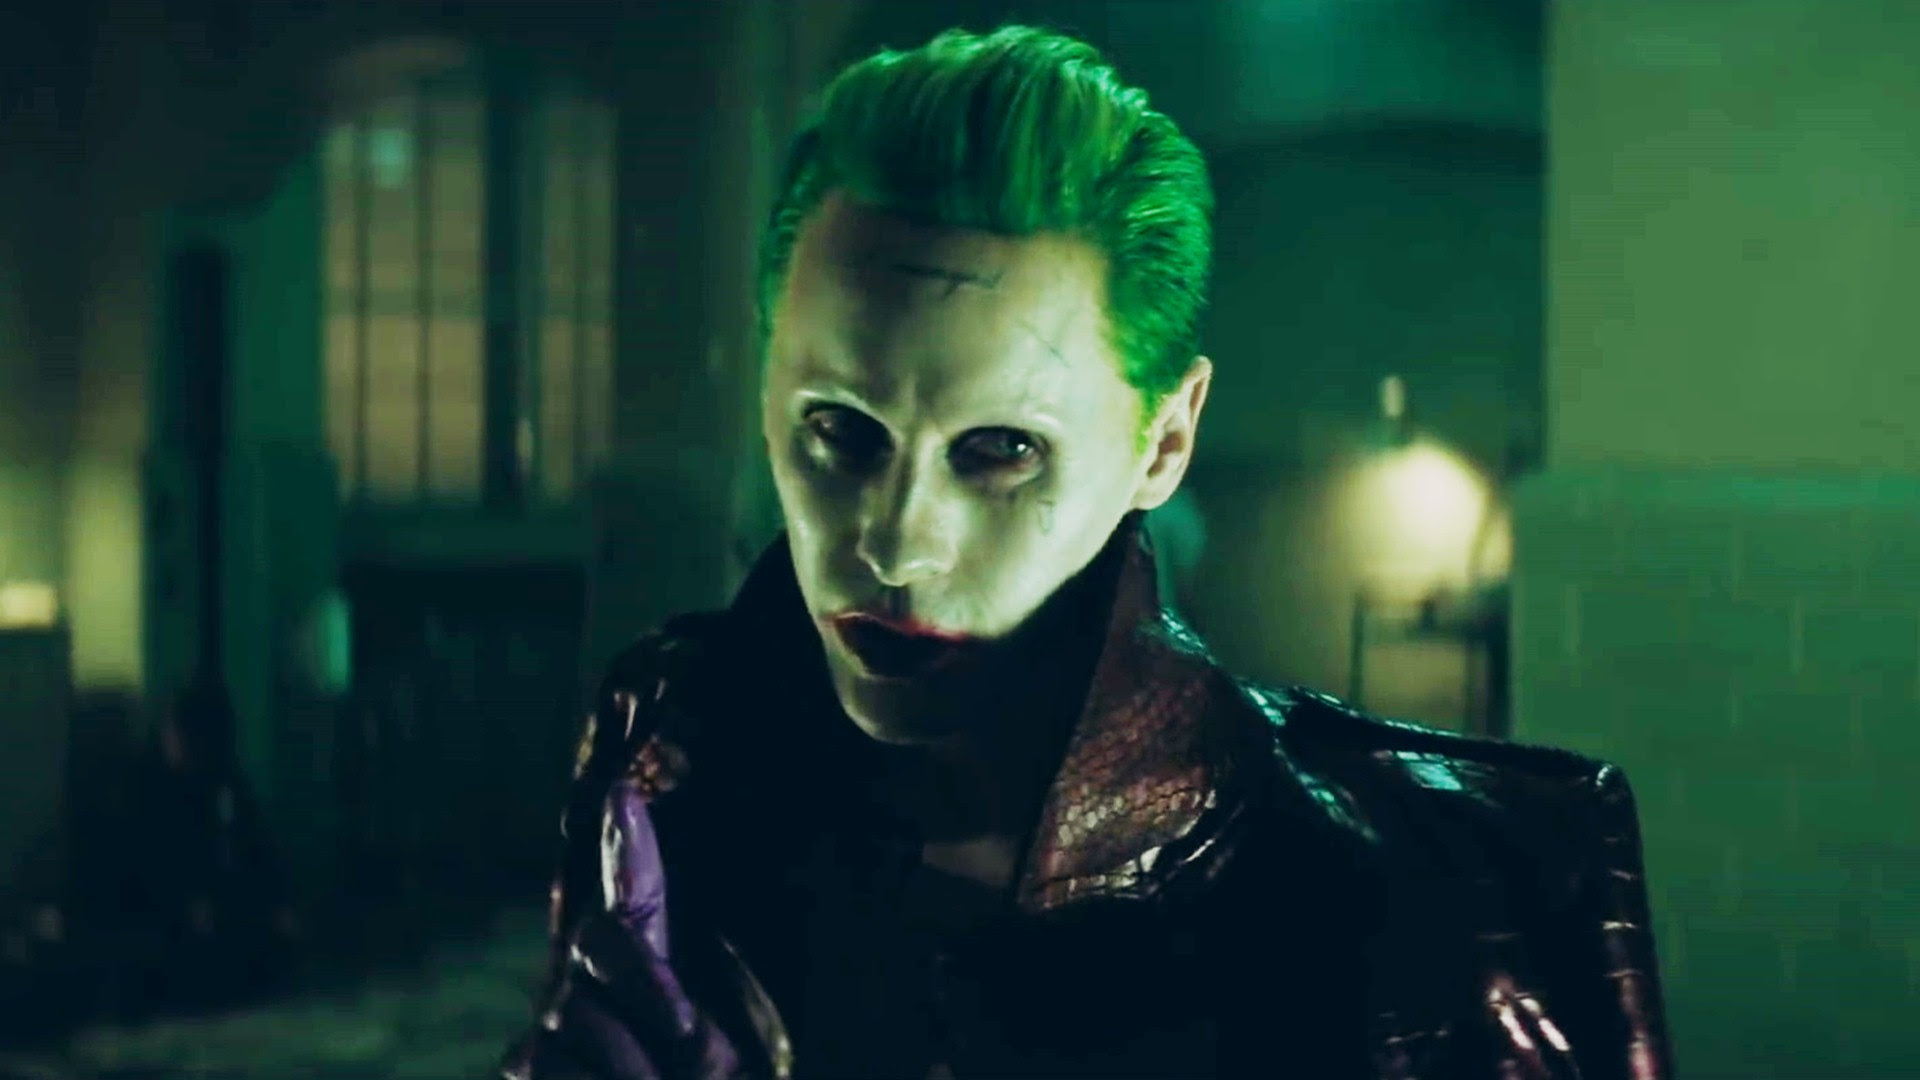 Jared Leto As Joker In Suicide Squad 03390 Baltana